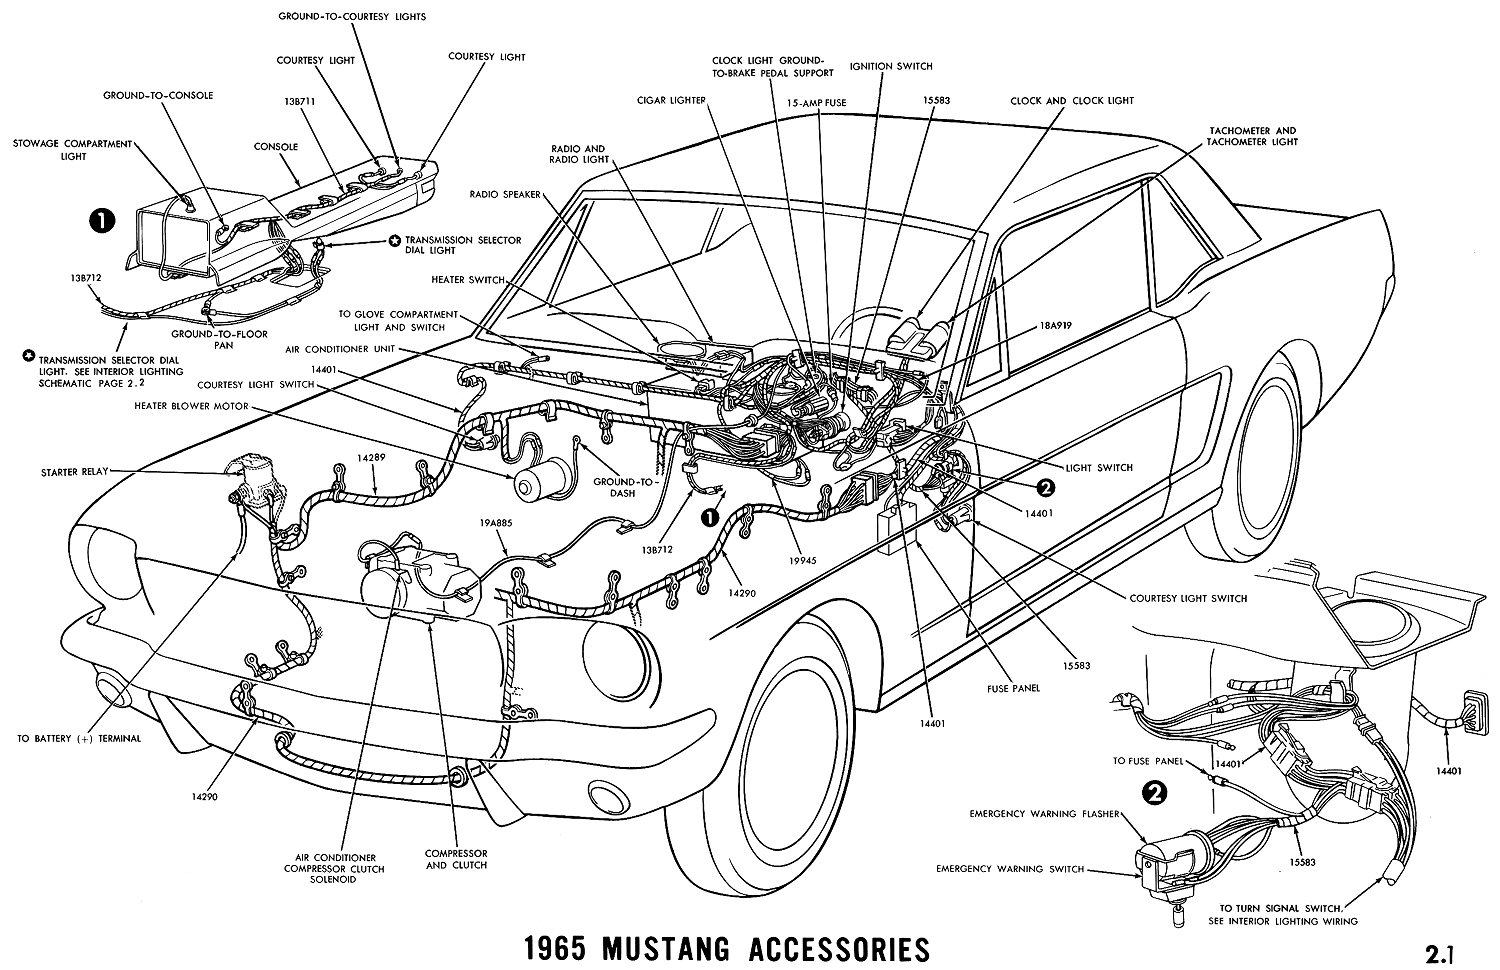 1965h 1965 mustang wiring diagrams average joe restoration 1965 Mustang Restoration Guide at gsmx.co